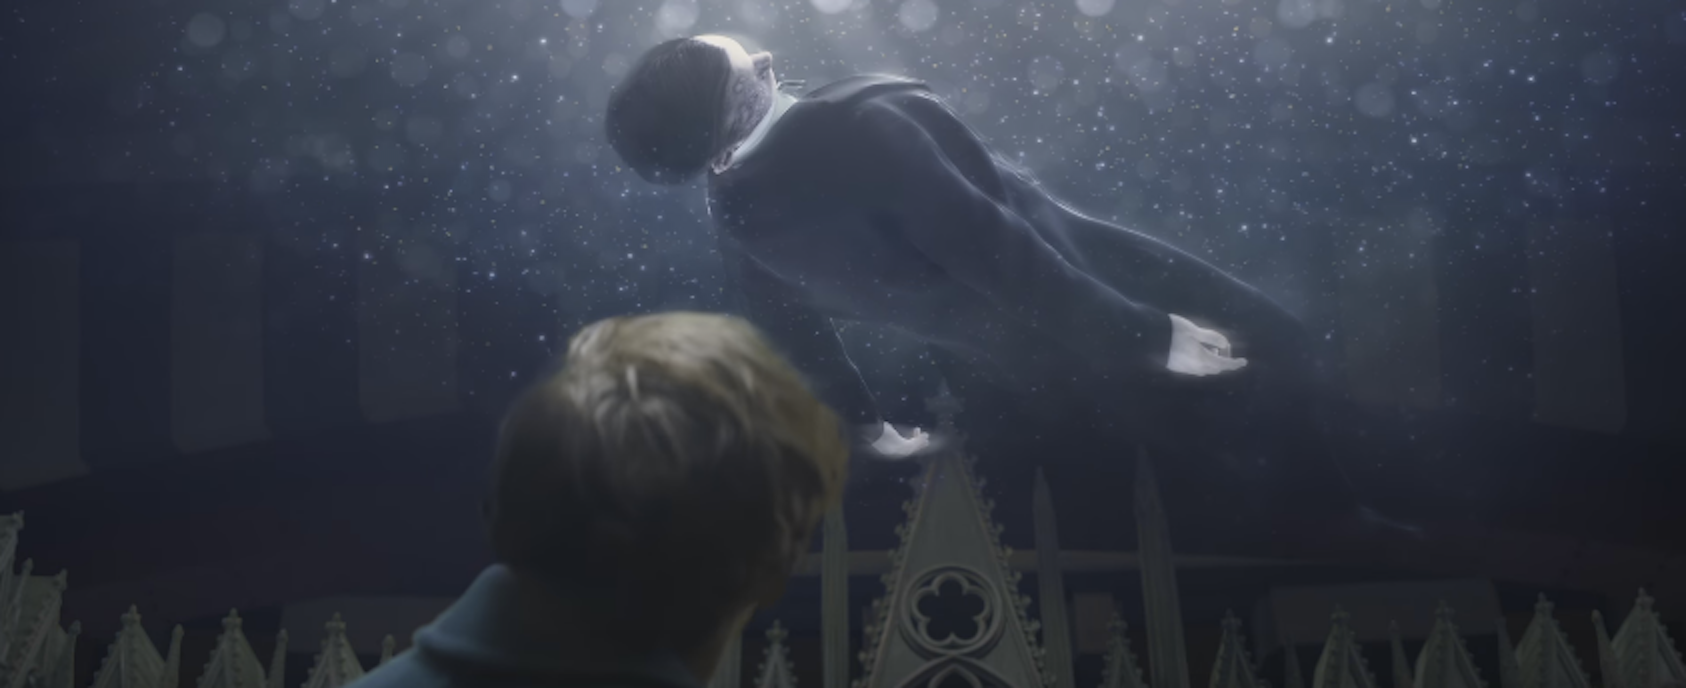 Newt Scamander at MACUSA in 'Fantastic Beasts and Where to Find Them'